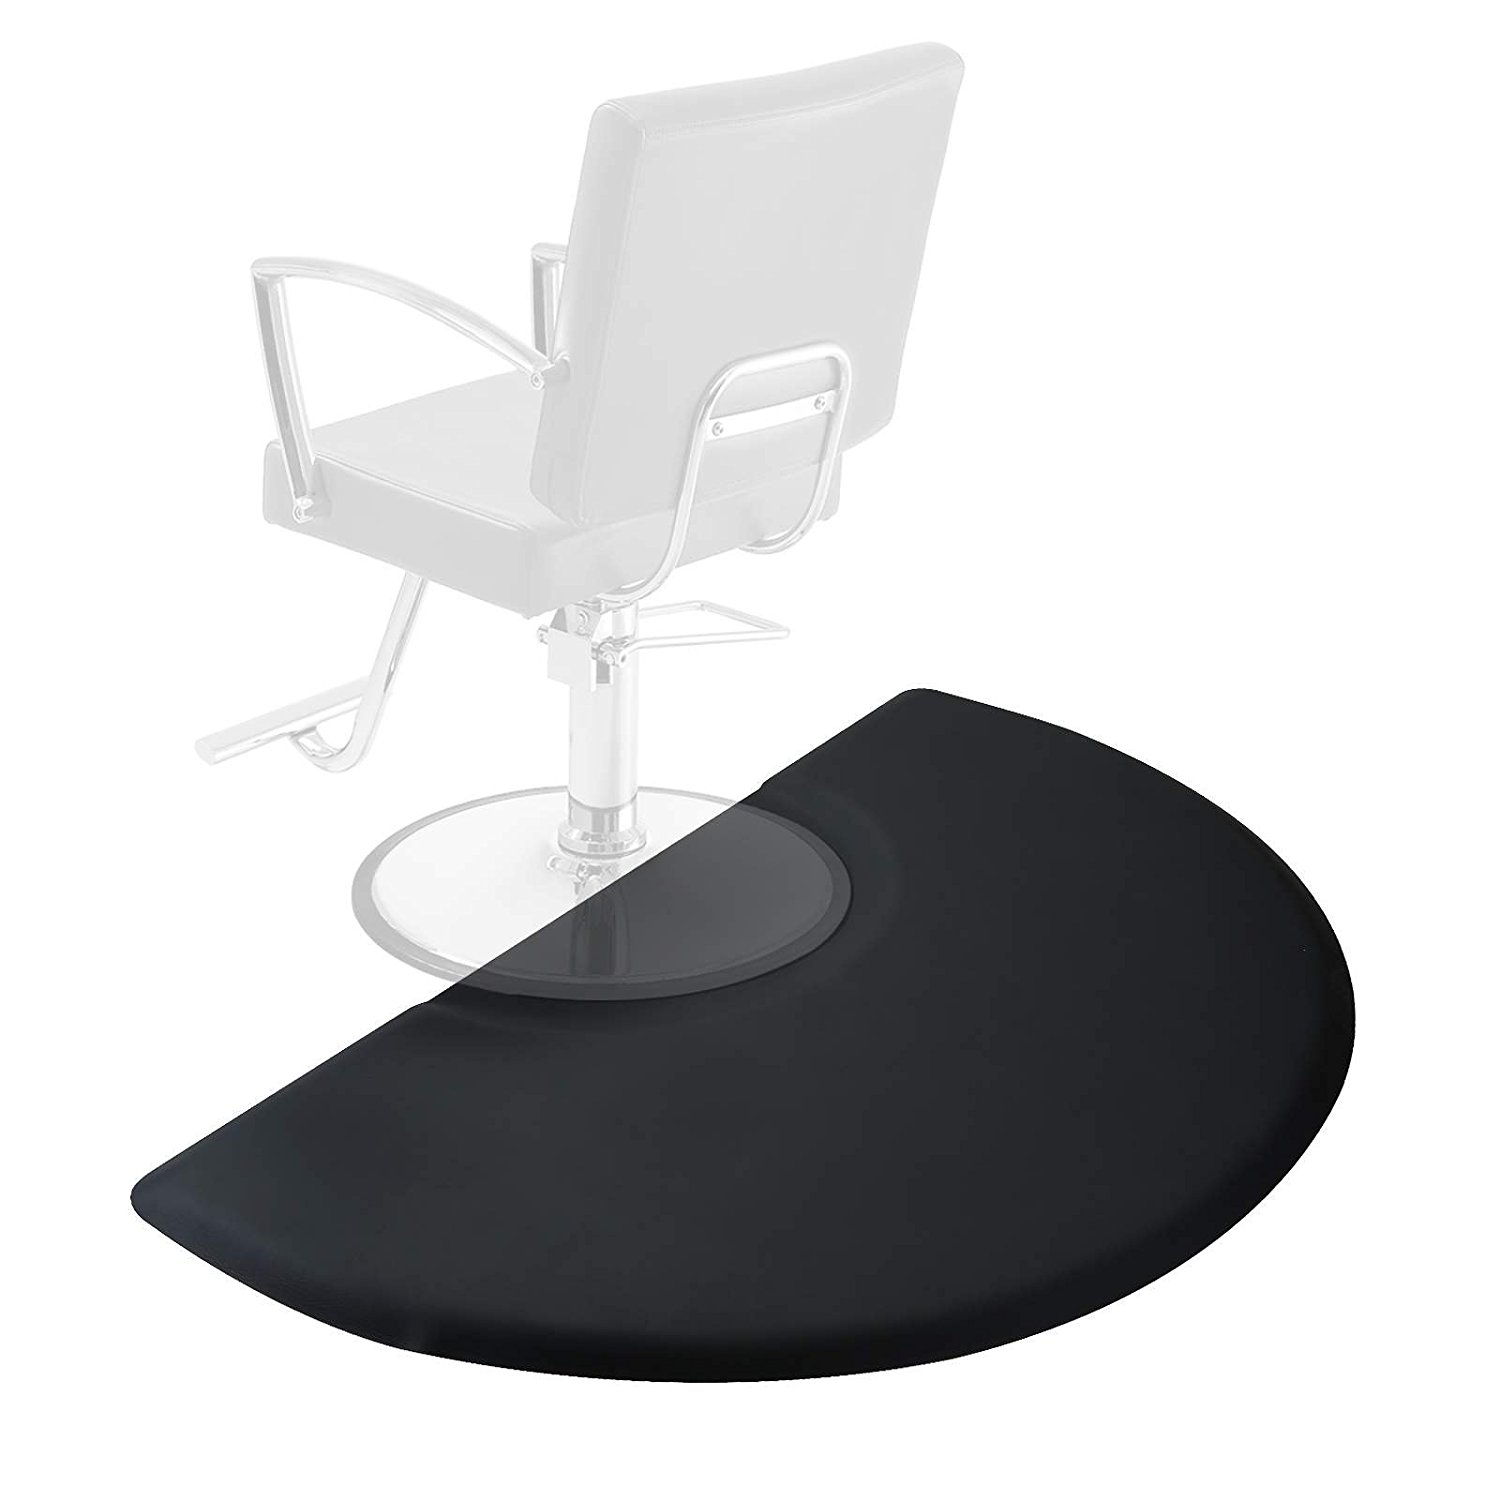 Saloniture 3 ft. x 5 ft. Salon & Barber Shop Chair Anti-Fatigue Floor Mat - Black Semi Circle - 5/8 in. Thick